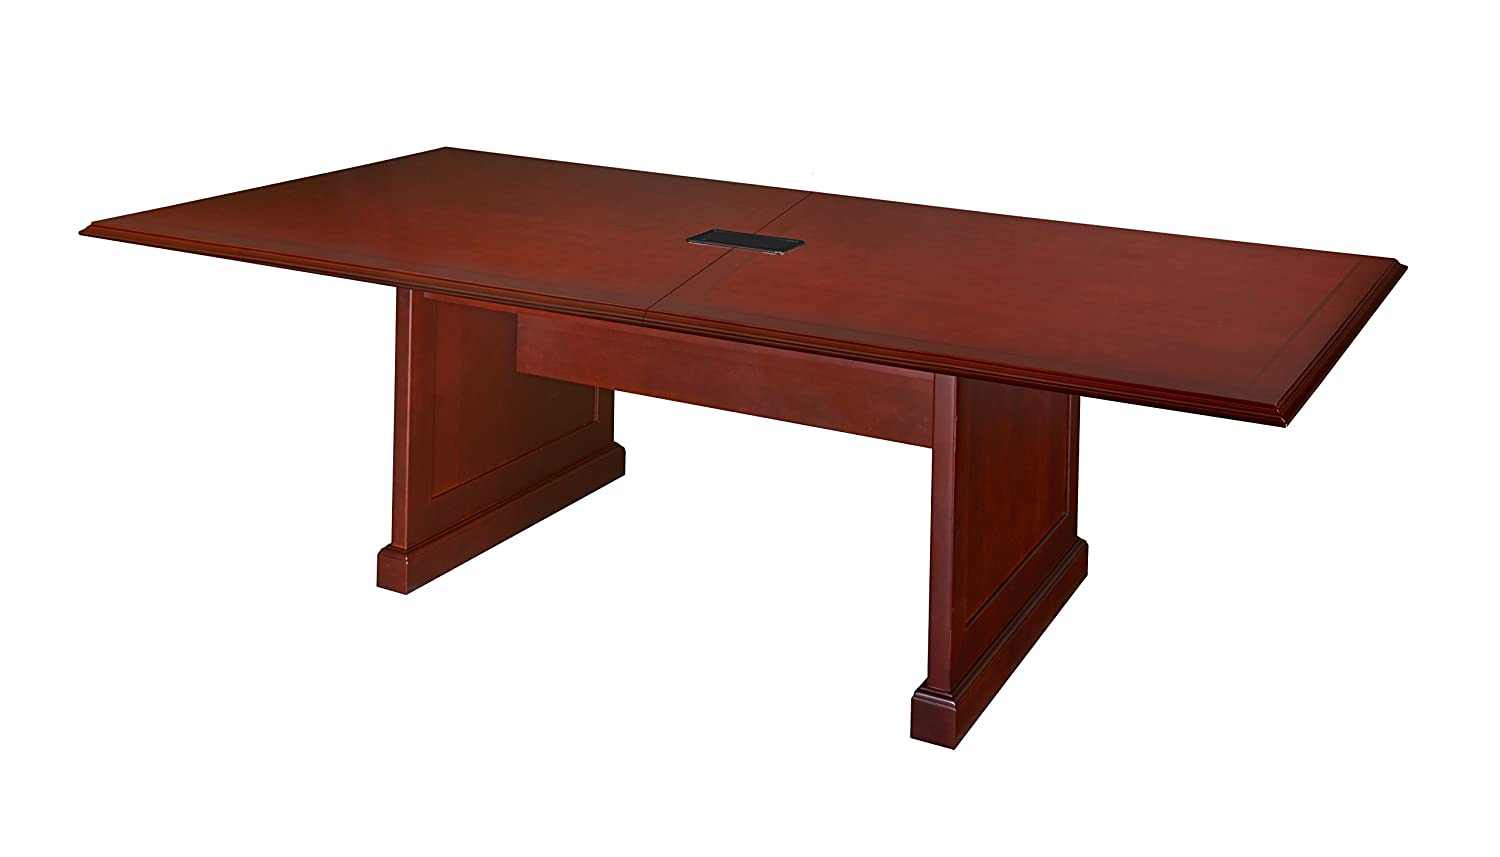 Amazoncom Regency Prestige Inch By Inch Conference Table - Desk with conference table